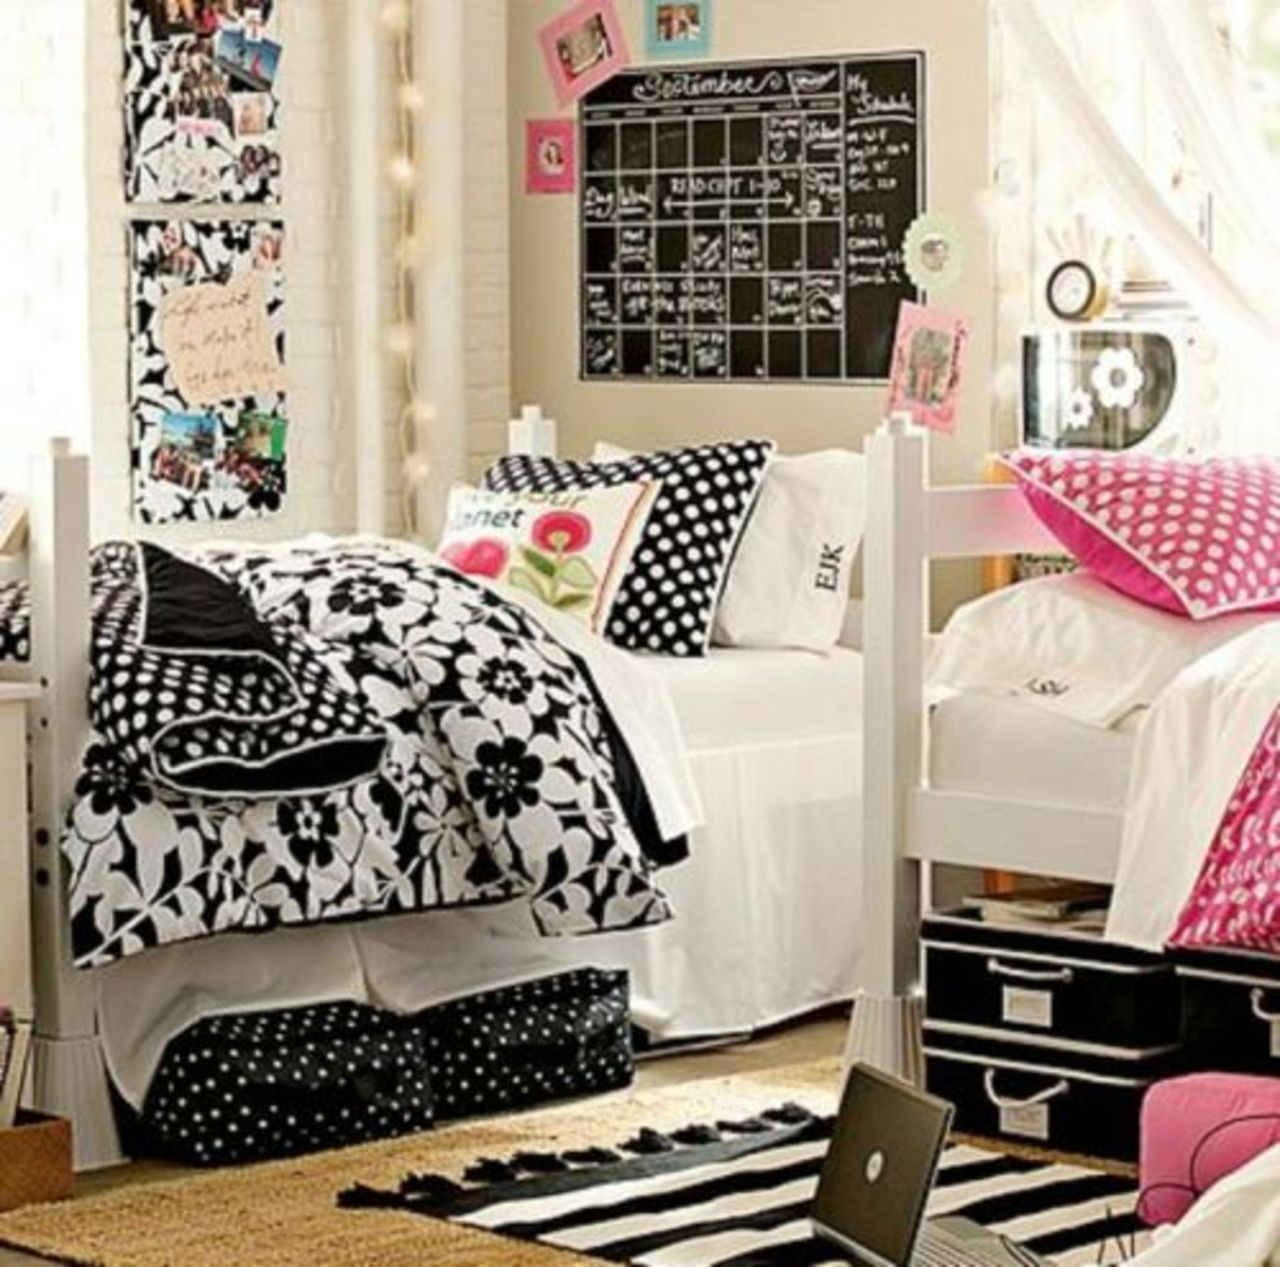 Dorm Room Decor The Dos And Donts For College Dorm College